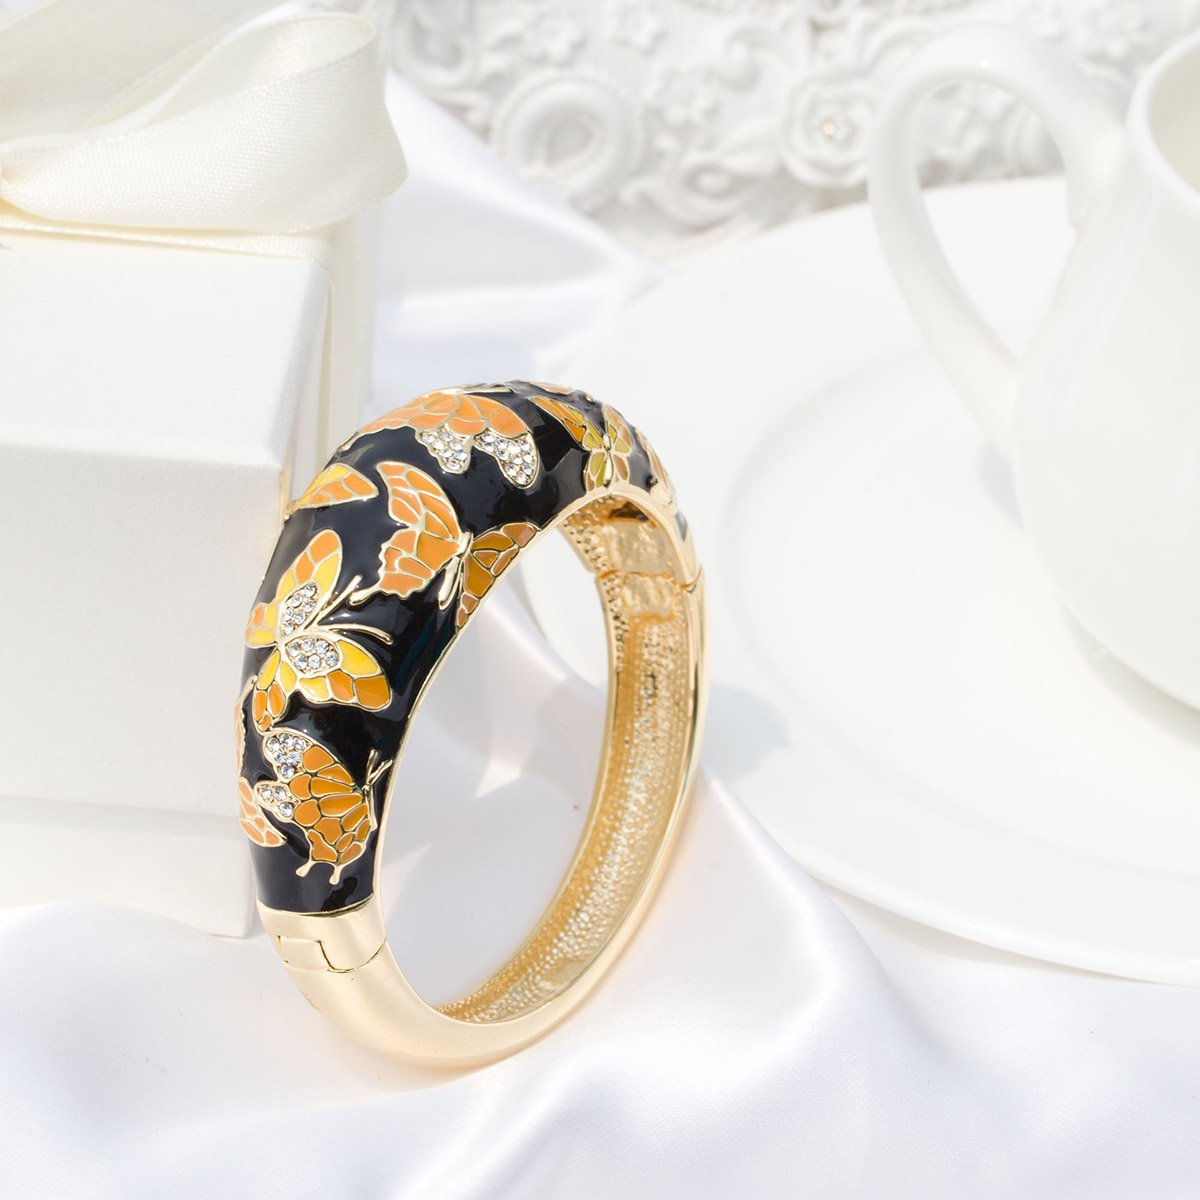 Gift Packing! Spring of Versaille Series QIANSE ❤ Spring of Versailles ❤ Yellow Gold Plated Handcrafted Bangles with Enamel Craft 7.5